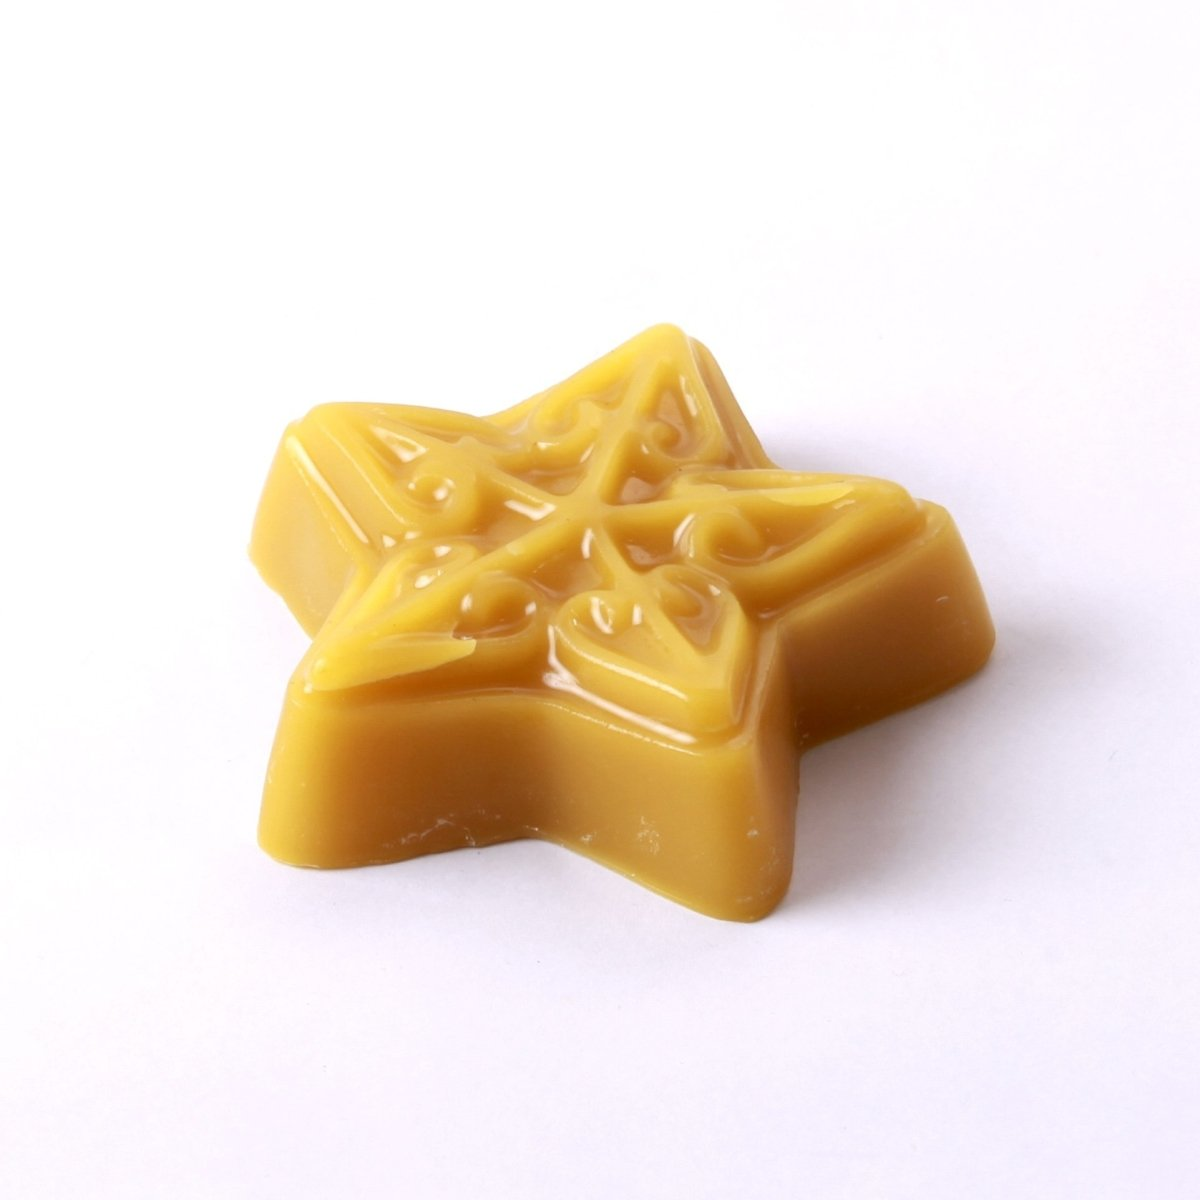 Embossed Star Soap/Bathbomb Mould 4 Cavity G08 - Mystic Moments UK